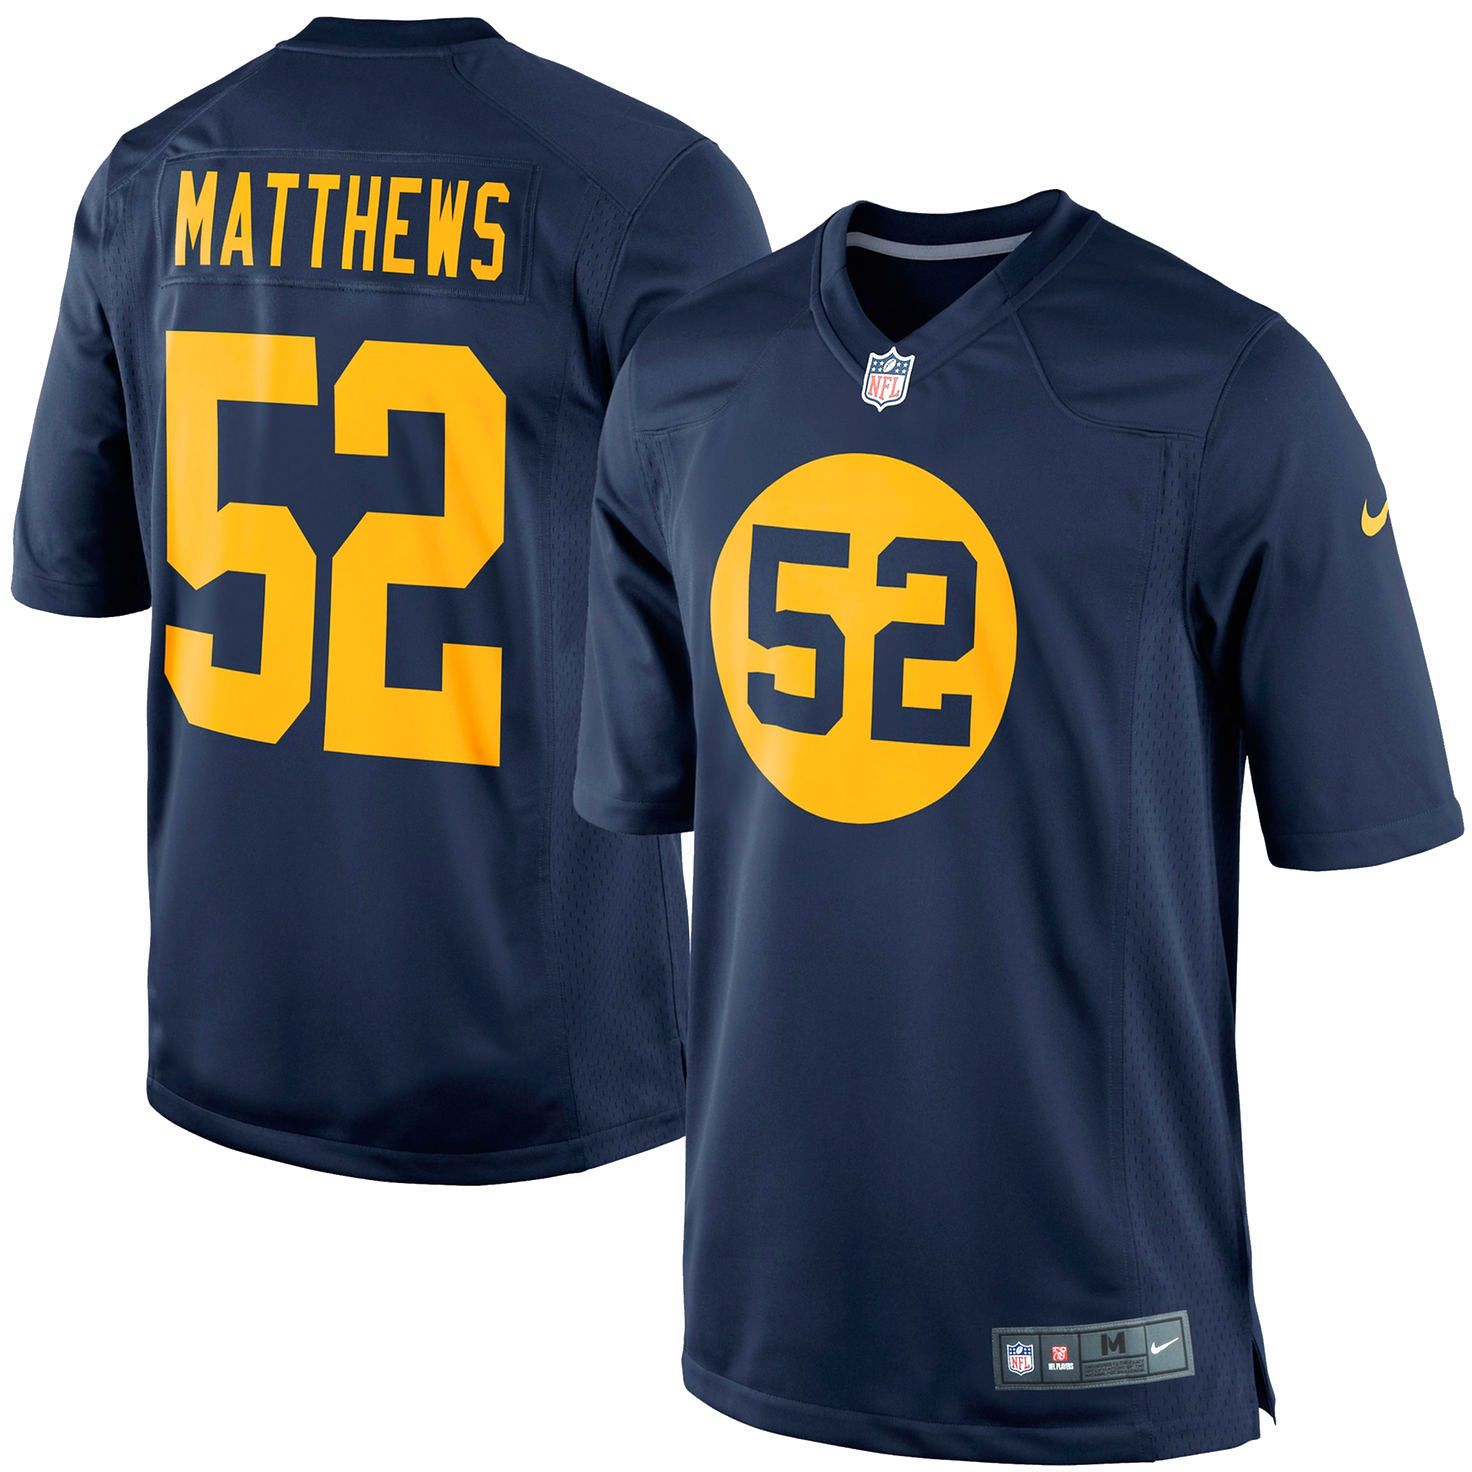 Clay Matthews Green Bay Packers Nike Throwback Limited Jersey Navy Green Bay Packers Jerseys Green Bay Packers Aaron Rodgers Green Bay Packers Game